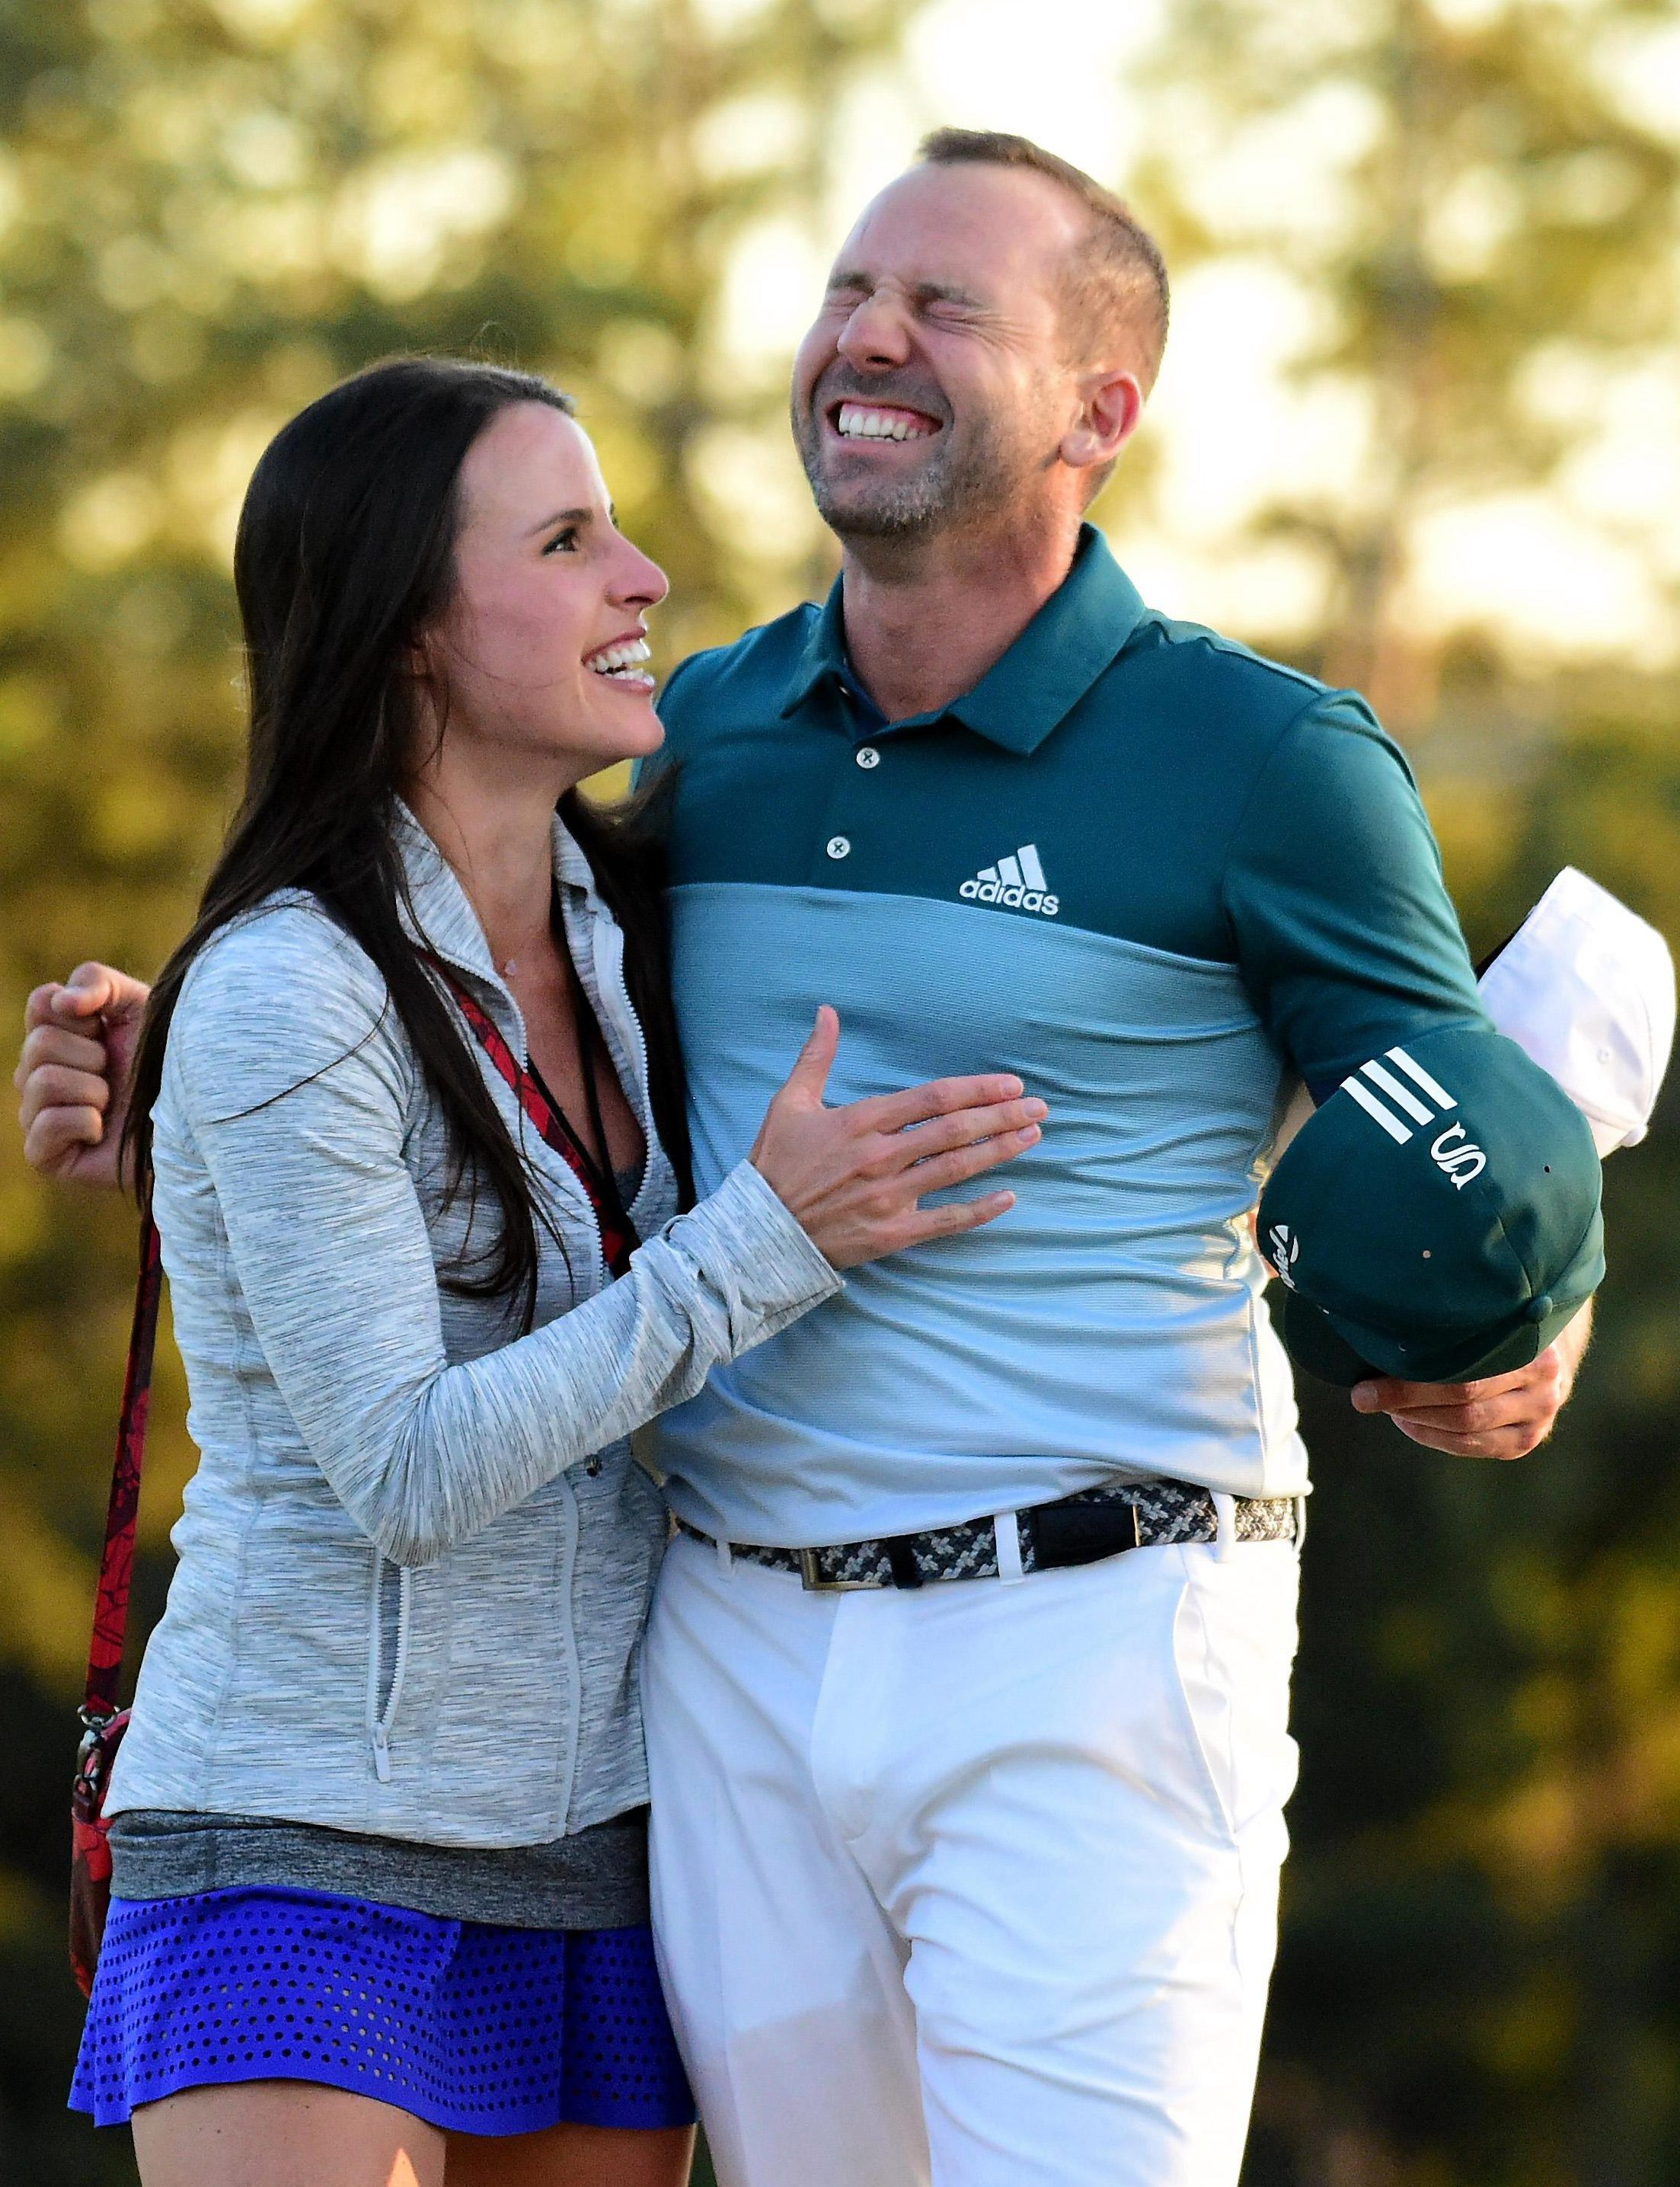 El Nino was overcome with emotion after a thrilling final-day shootout at Augusta